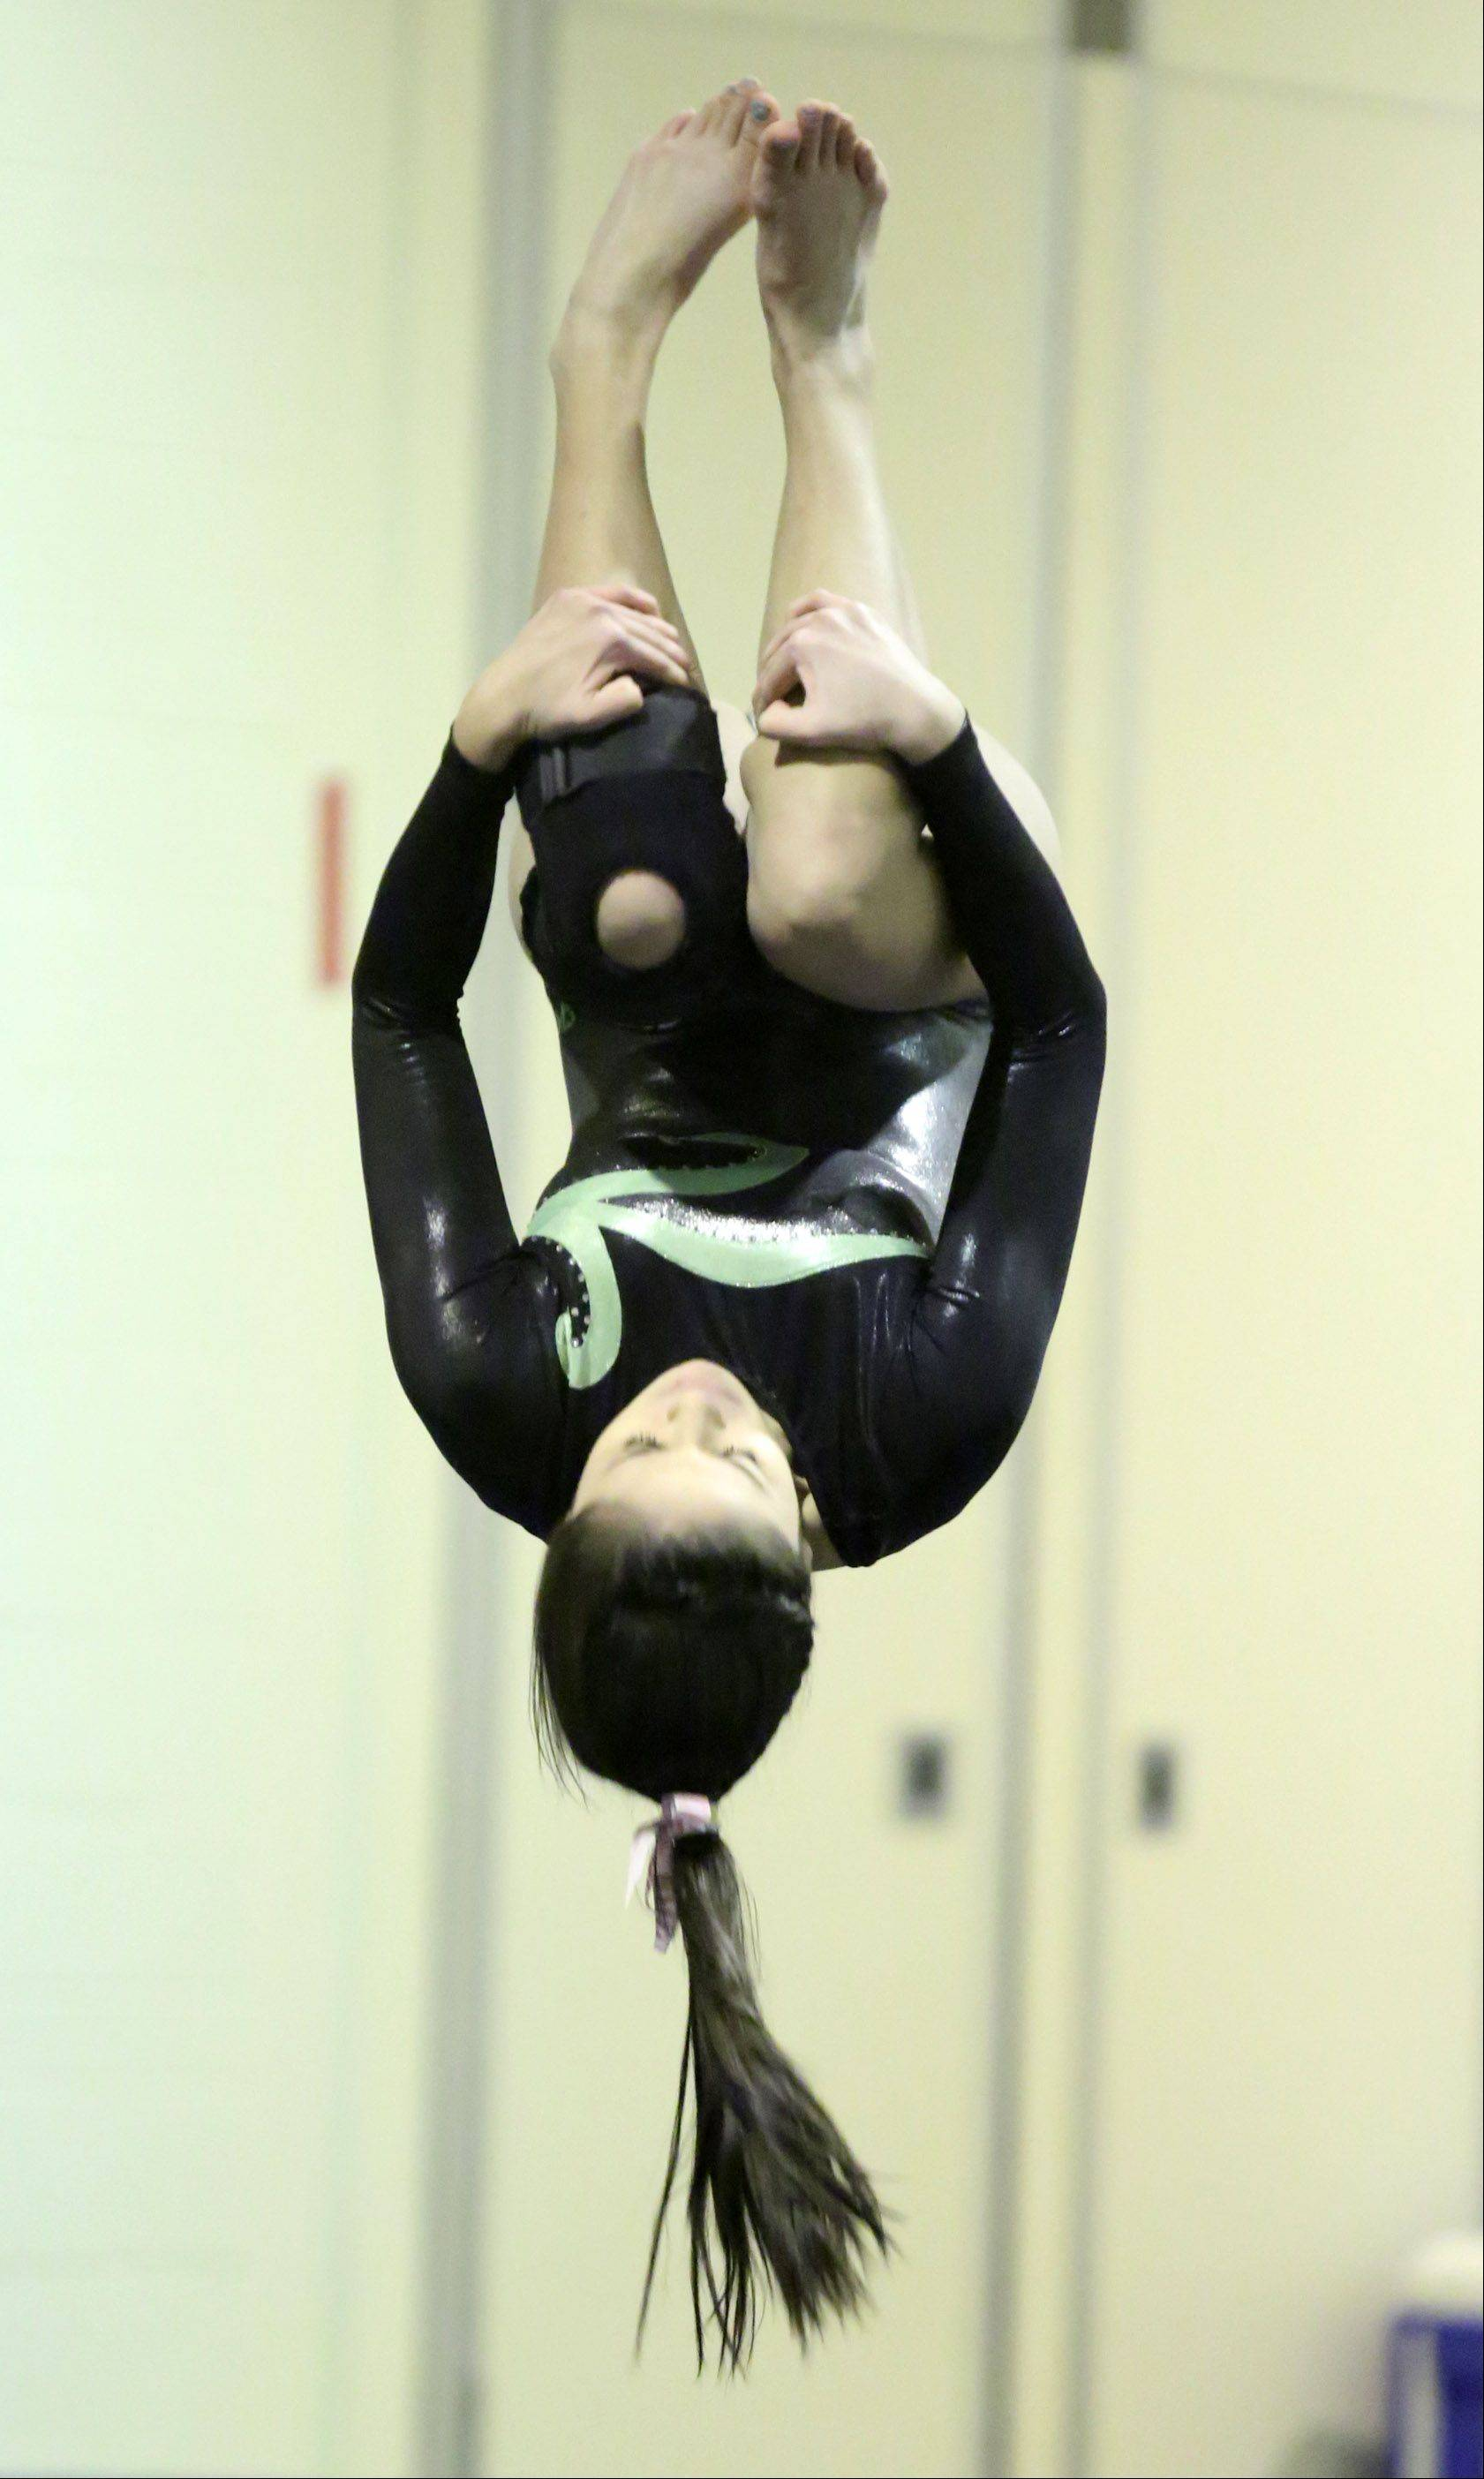 Elk Grove's Mia Loxiey competes on floor exercise at Prospect on Saturday.